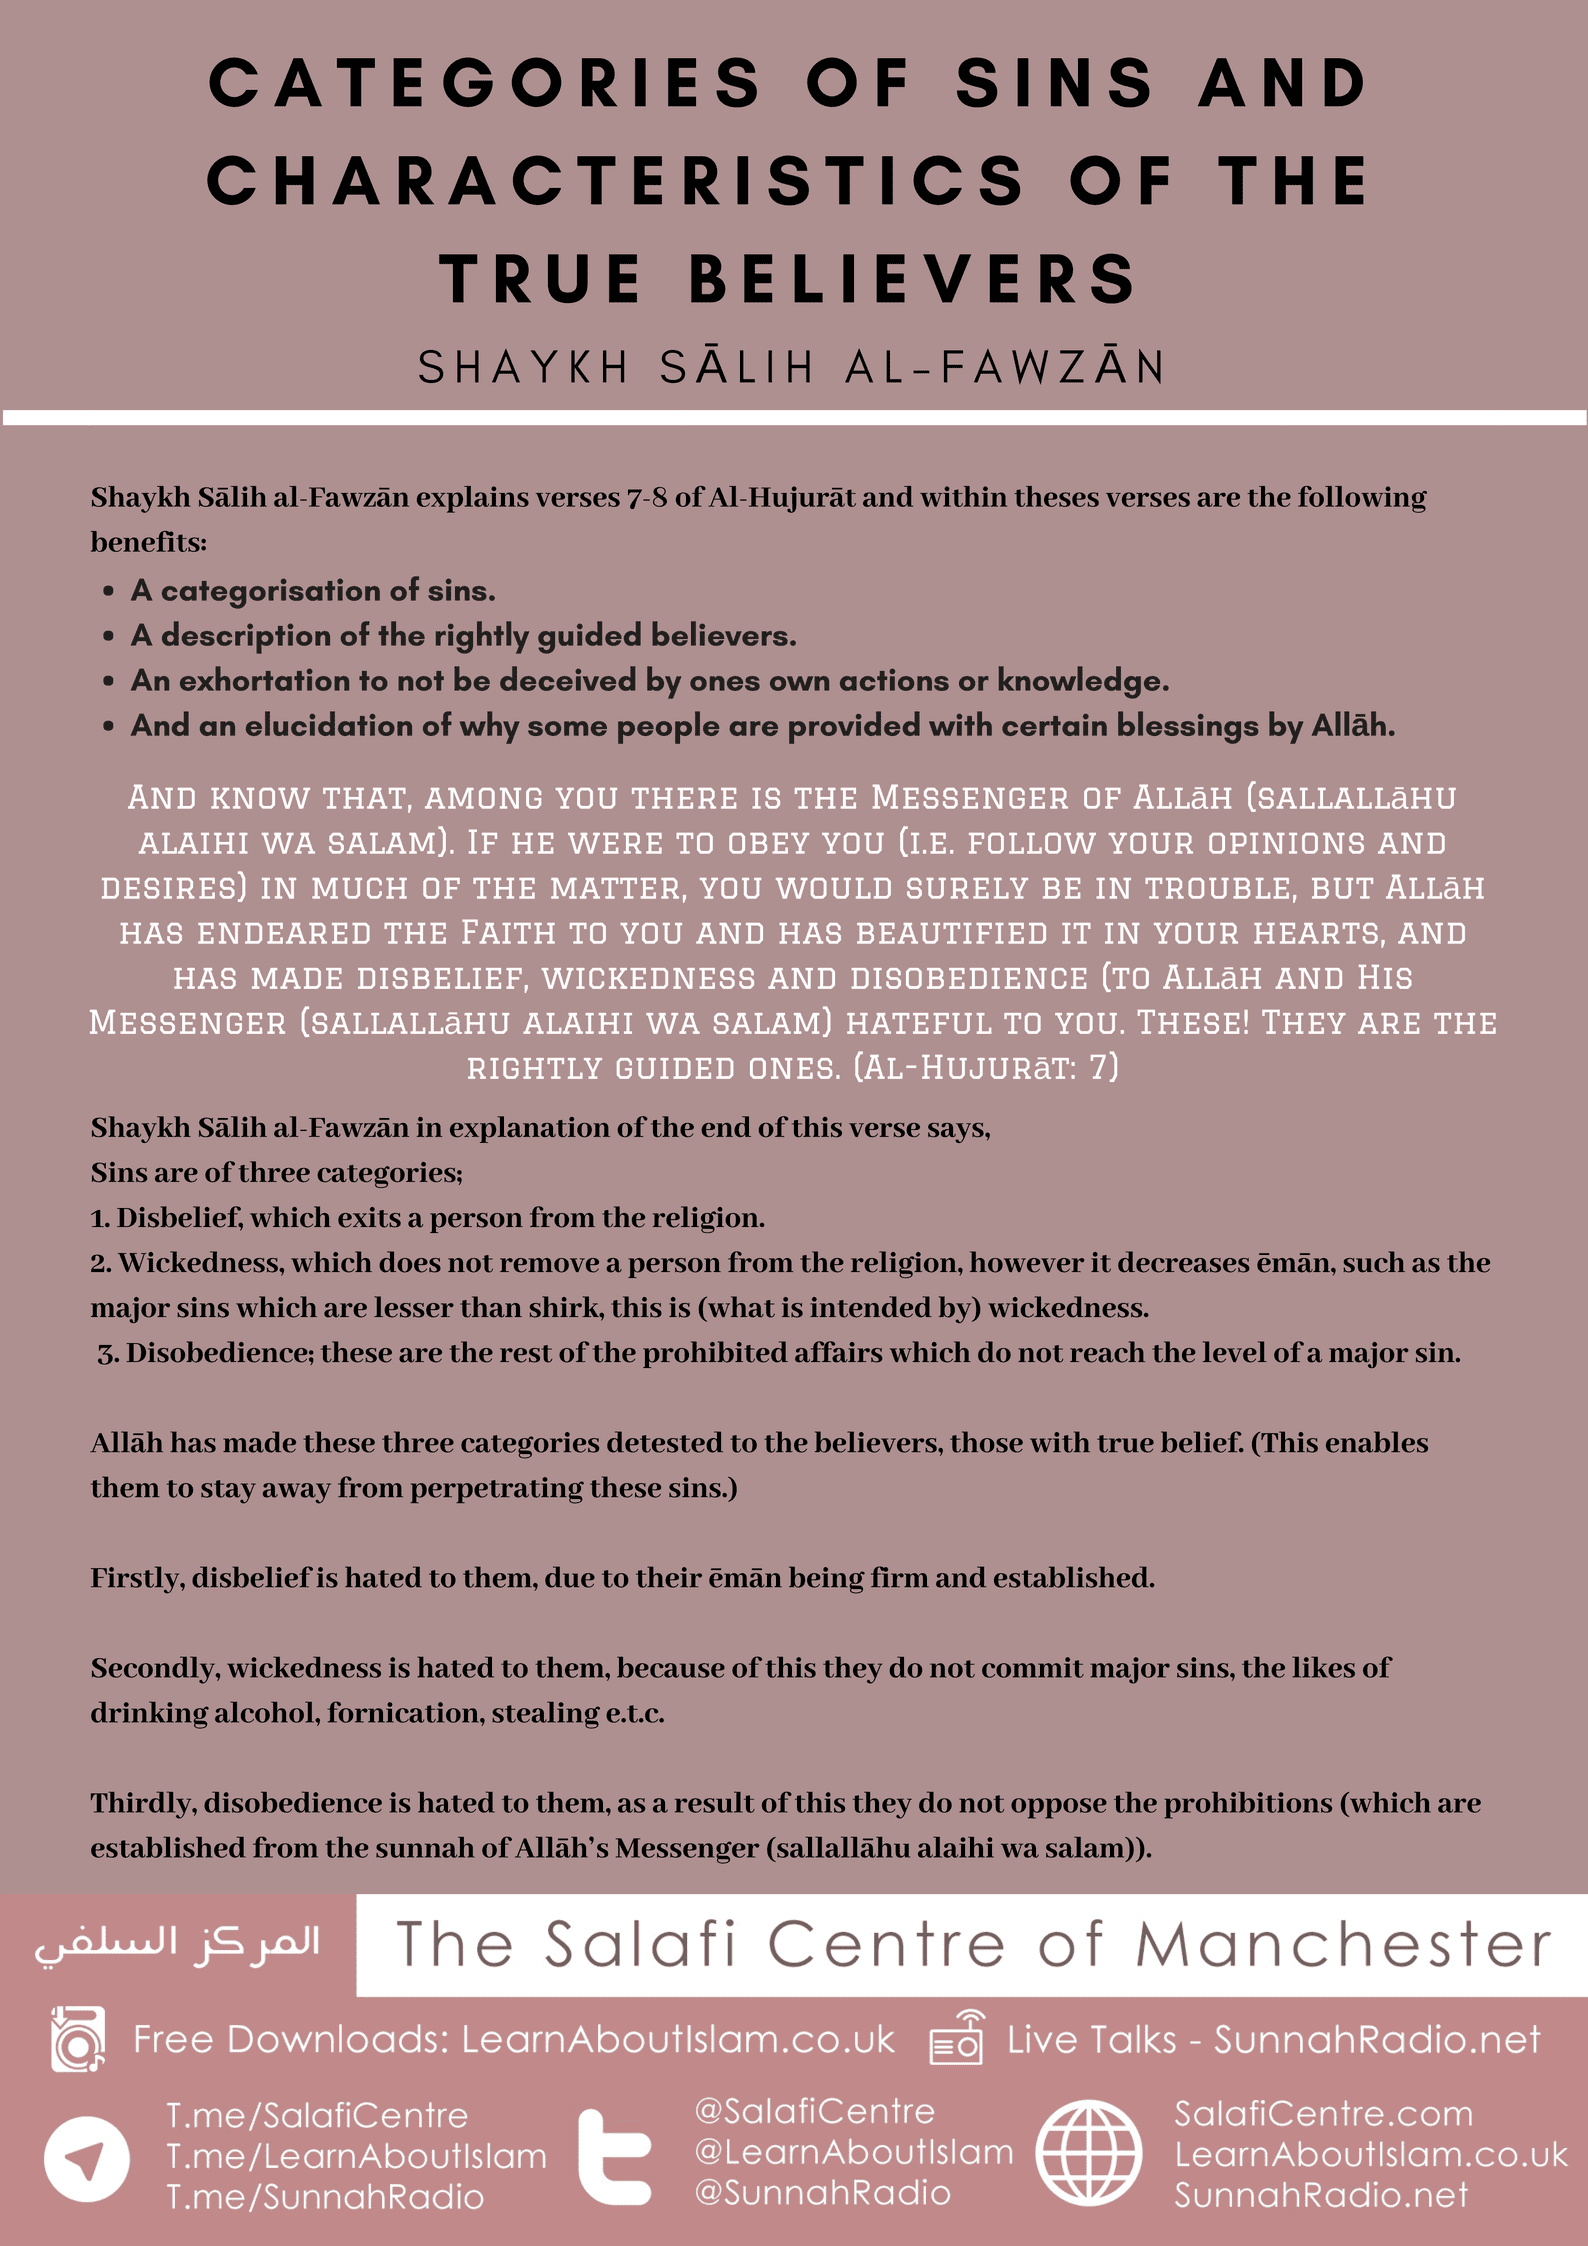 Categories of Sins and Characteristics of the True Believers – Shaykh Sālih al-Fawzān